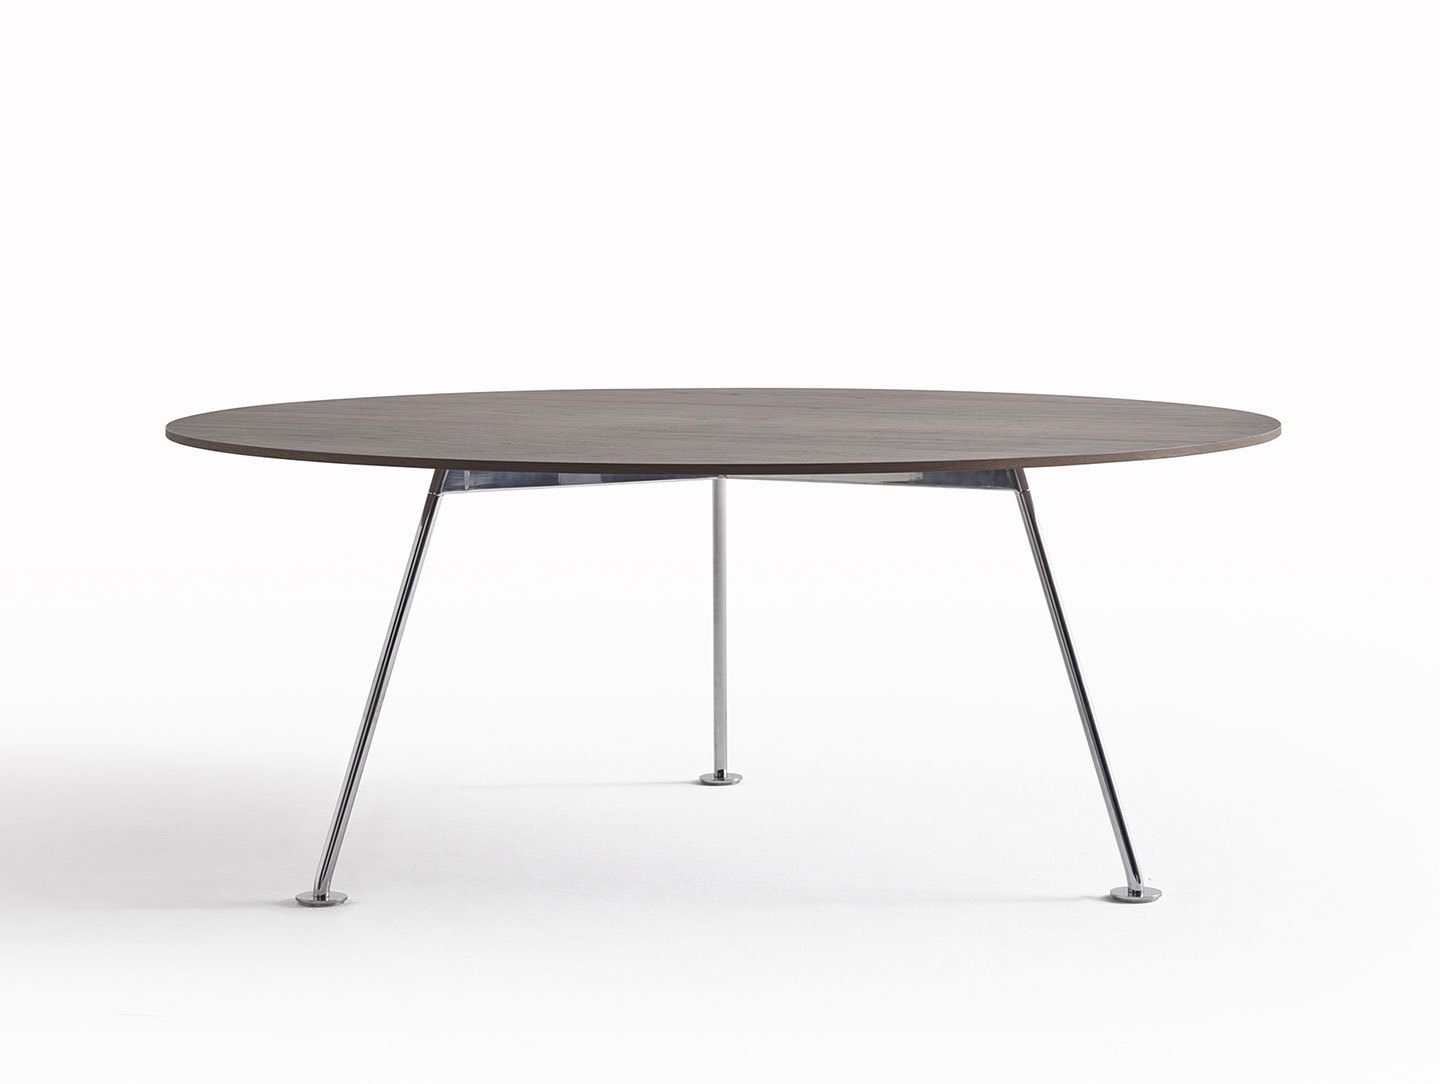 Knoll Grasshopper Table Round Wood Piero Lissoni